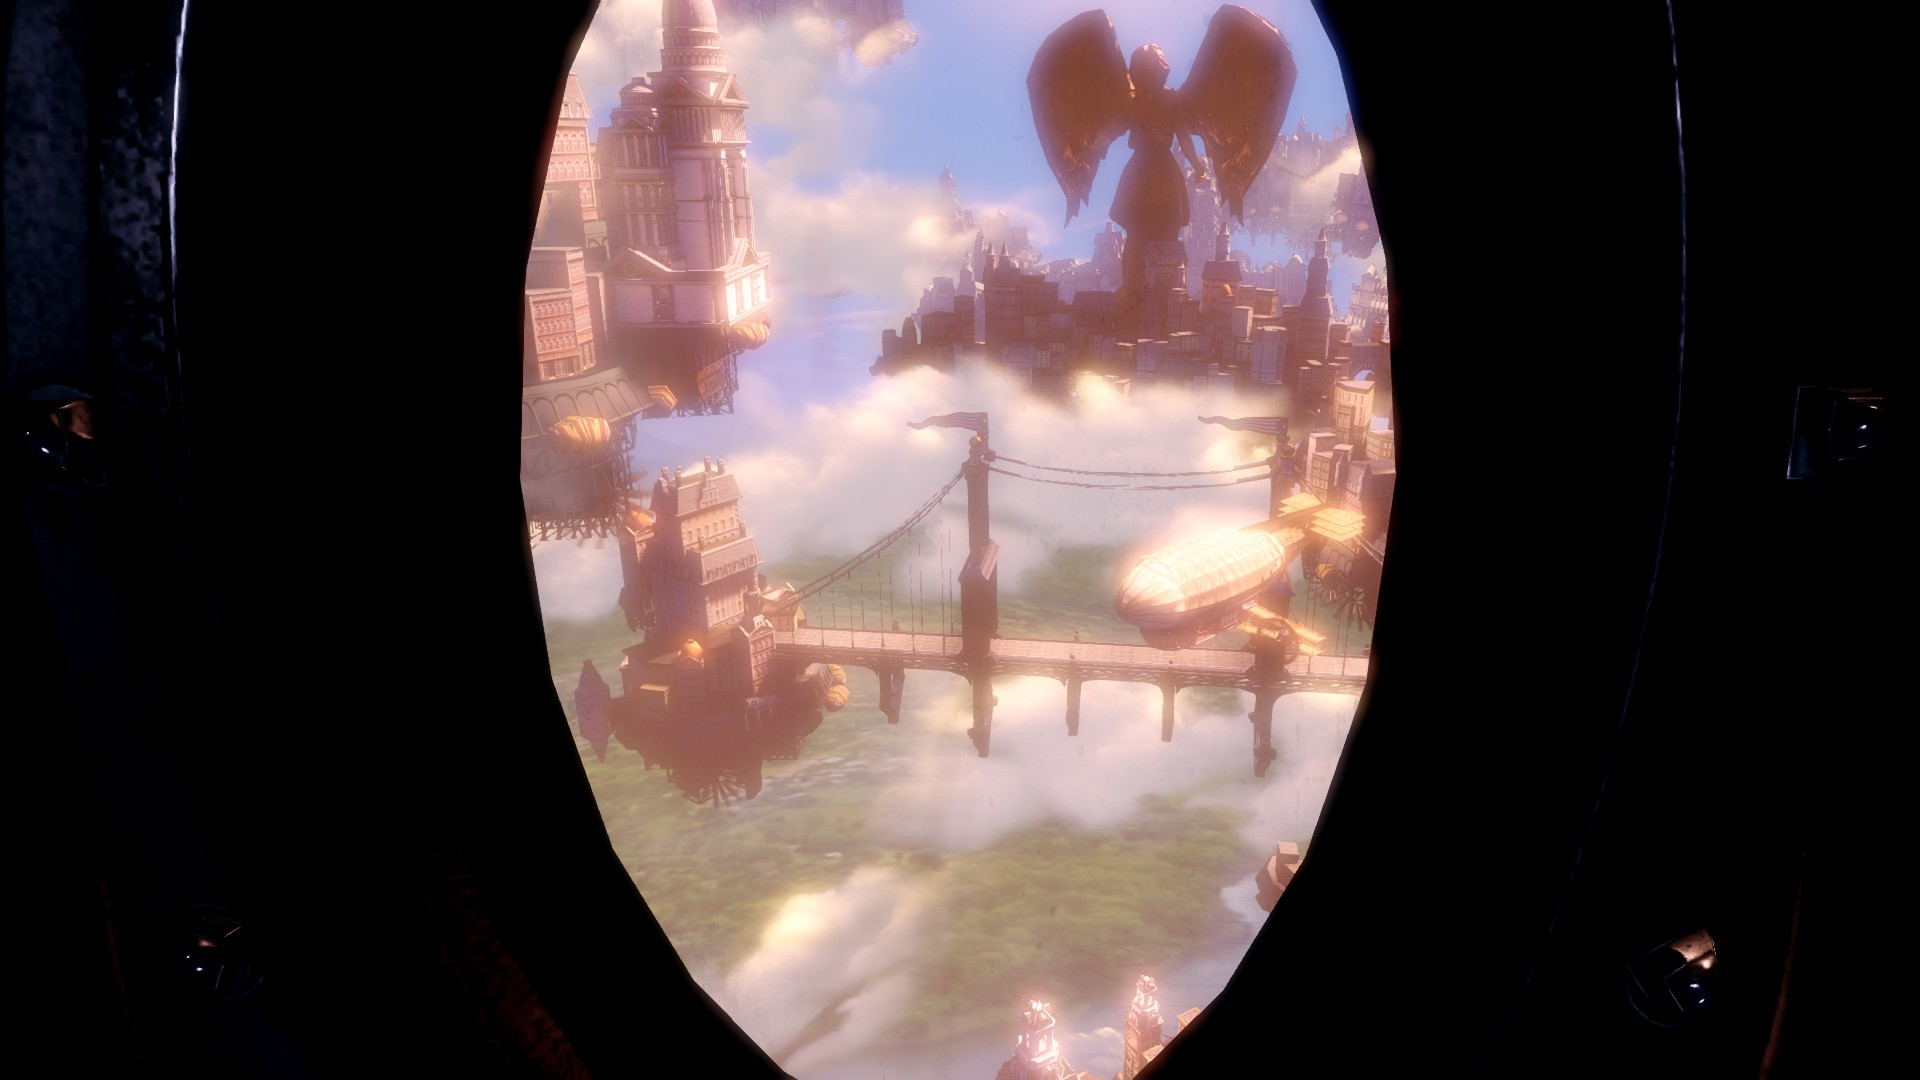 When the pod burst through the white of voluptuous the clouds, the player--for the first time--witnesses the supposed Utopia of Columbia.